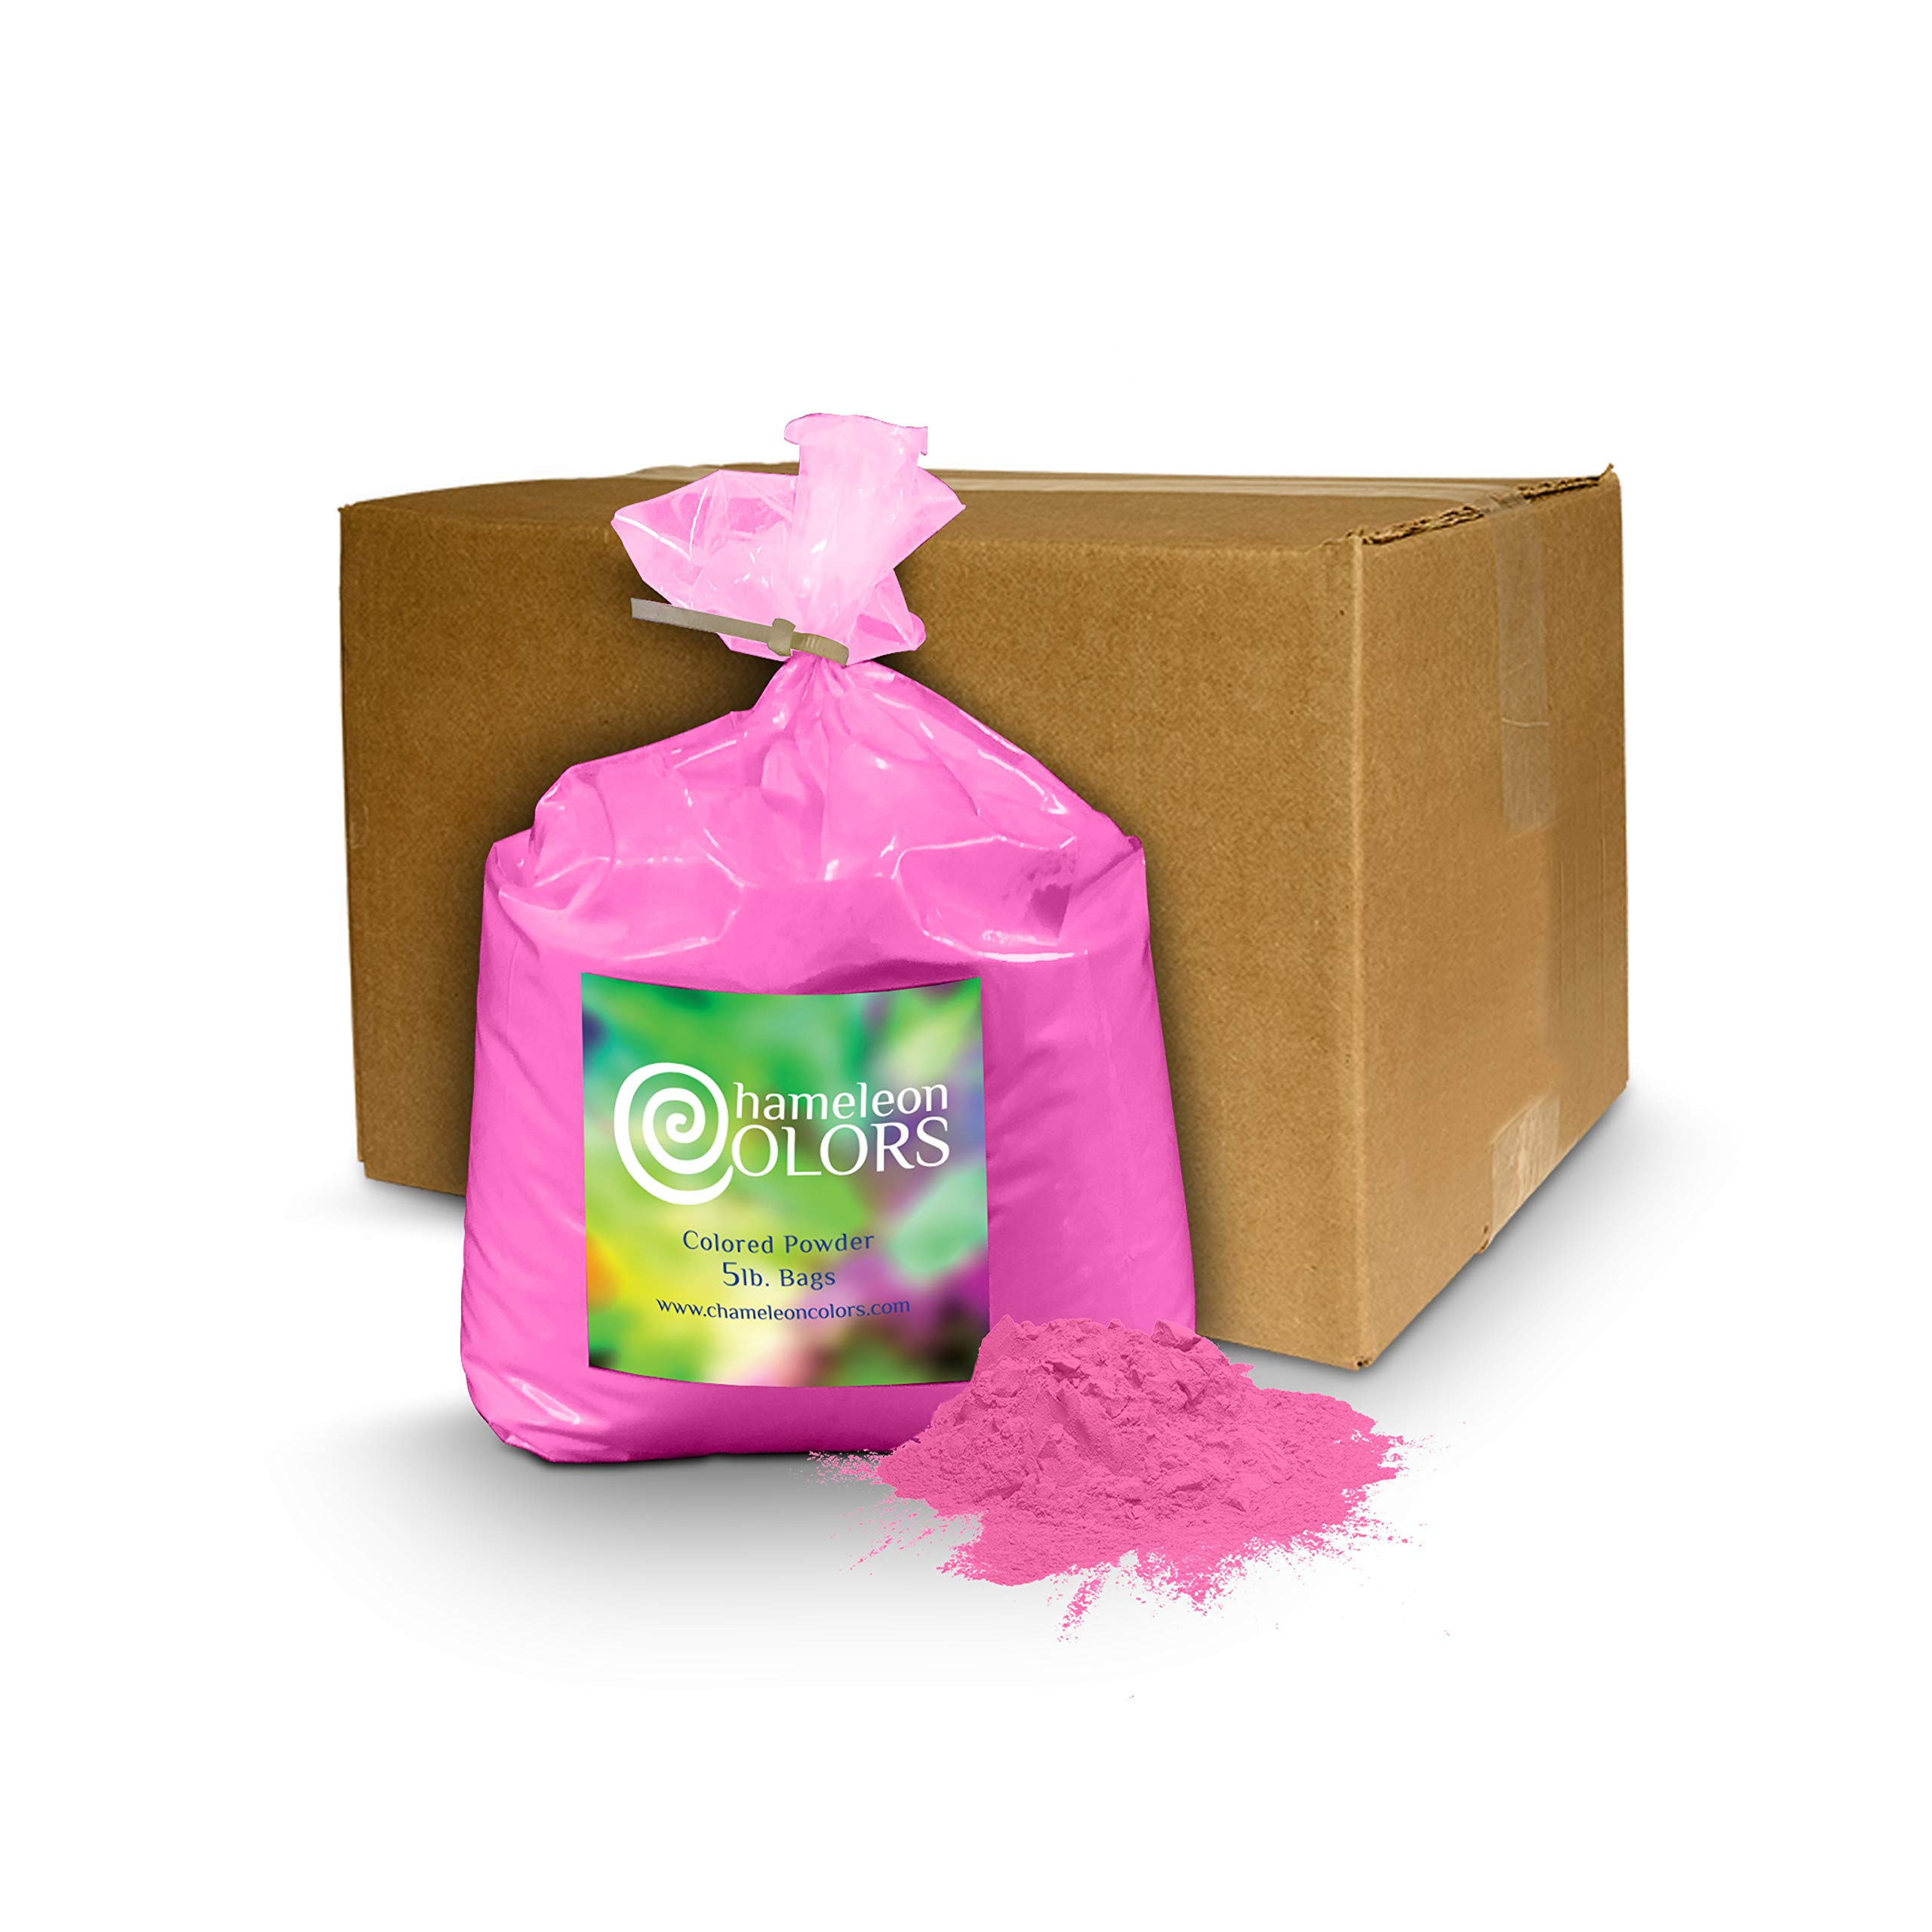 Holi Powder Gender Reveal by Chameleon Colors - 5lb Pink. Same premium, authentic product used for a color races, 5k, etc.